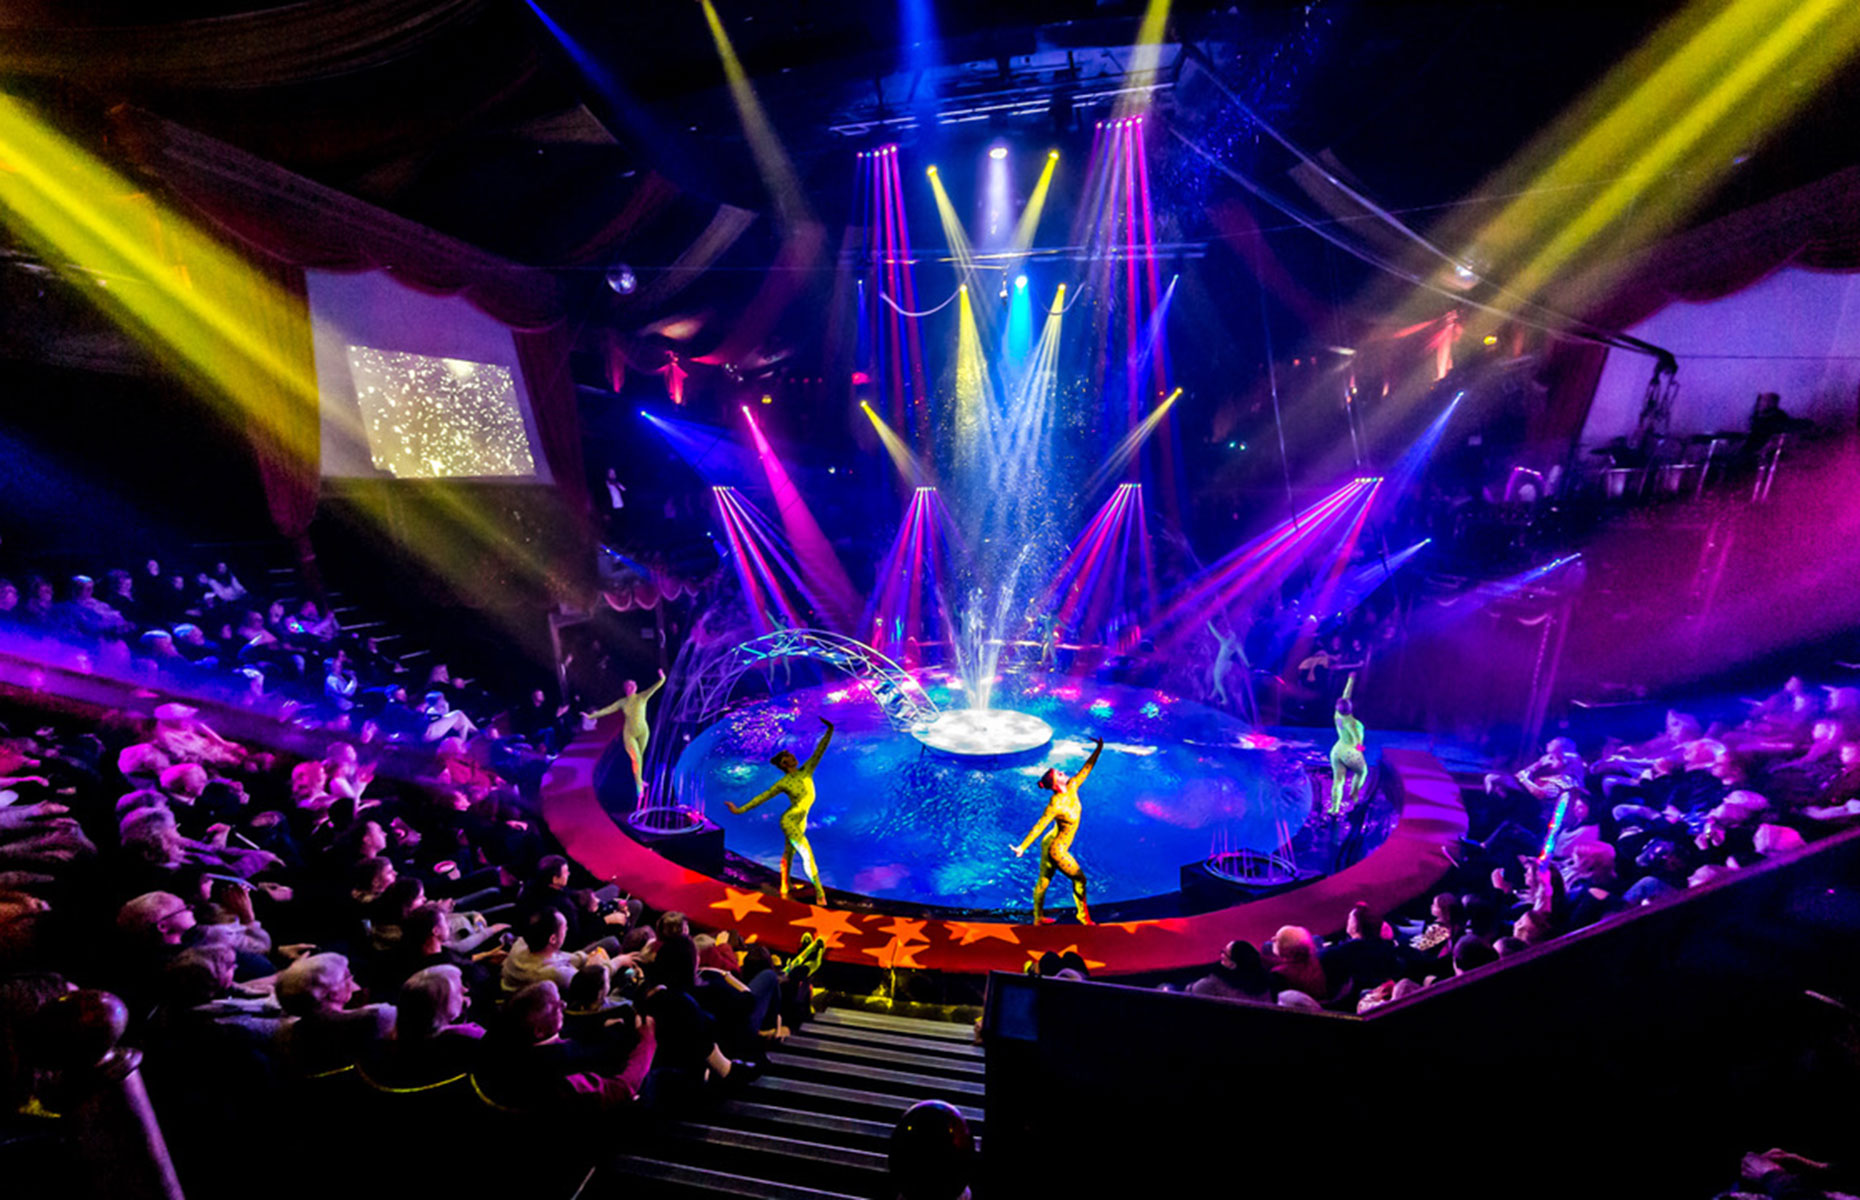 Hippodrome Circus, Great Yarmouth (Image: Courtesy of Visit Great Yarmouth)